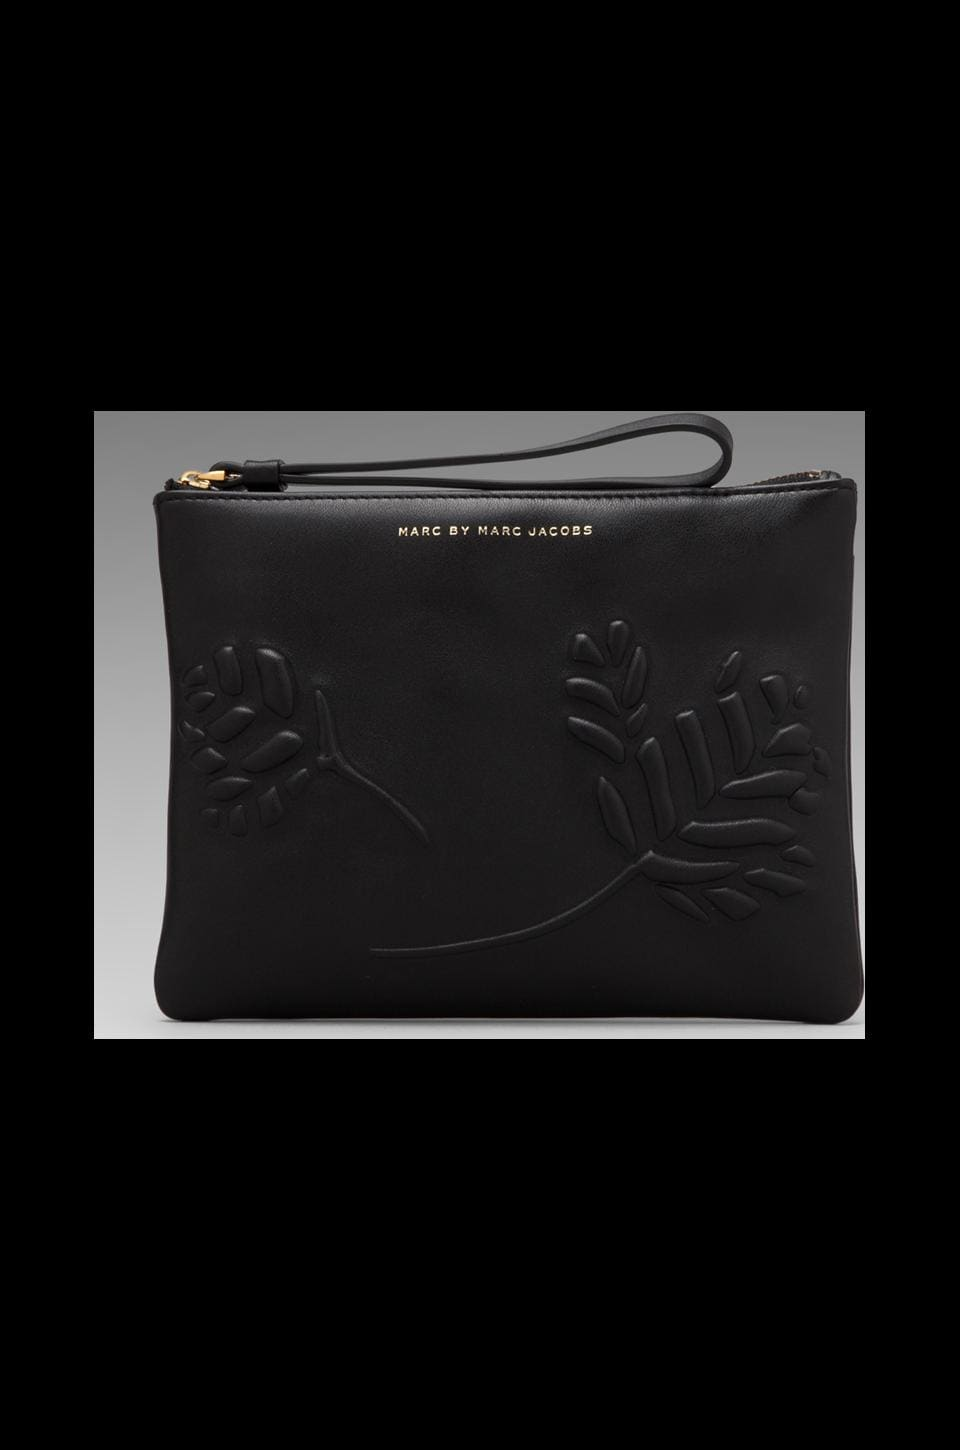 Marc by Marc Jacobs Mini Mareika Leather Wrist Zip Pouch in Black